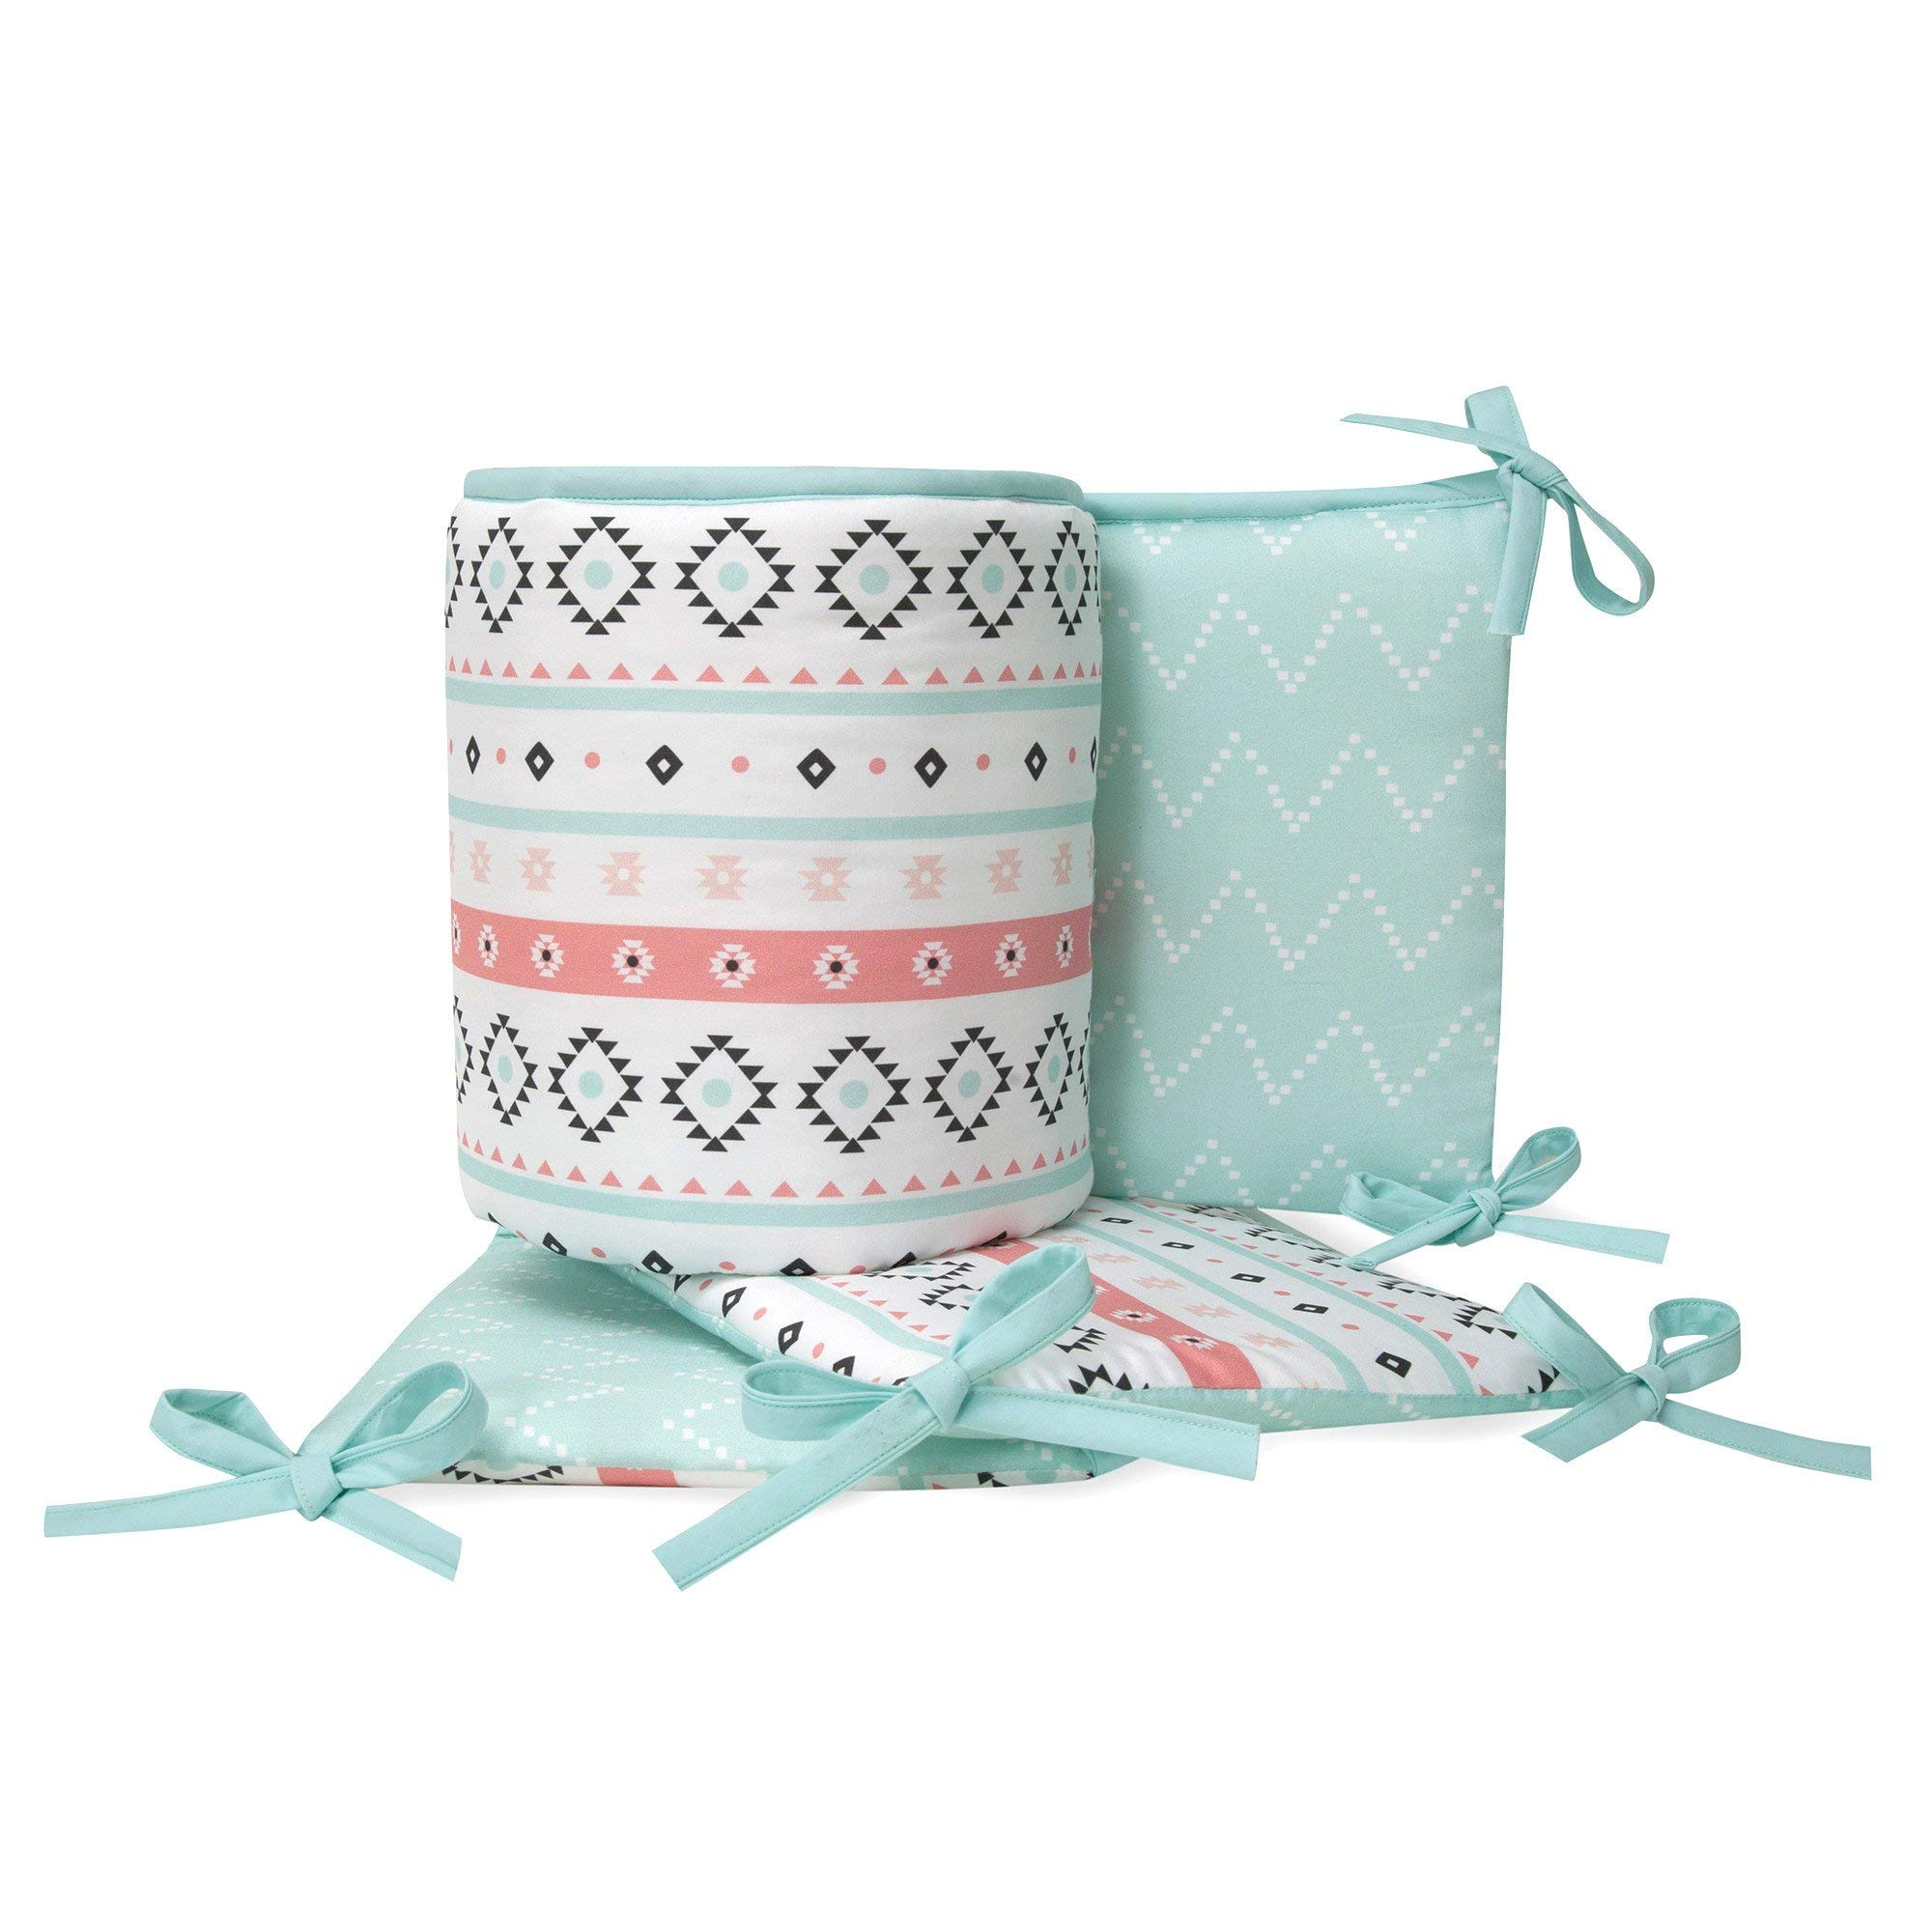 Lambs & Ivy Little Spirit 4-Piece Crib Bumper - Blue, White, Coral, Modern by Lambs & Ivy